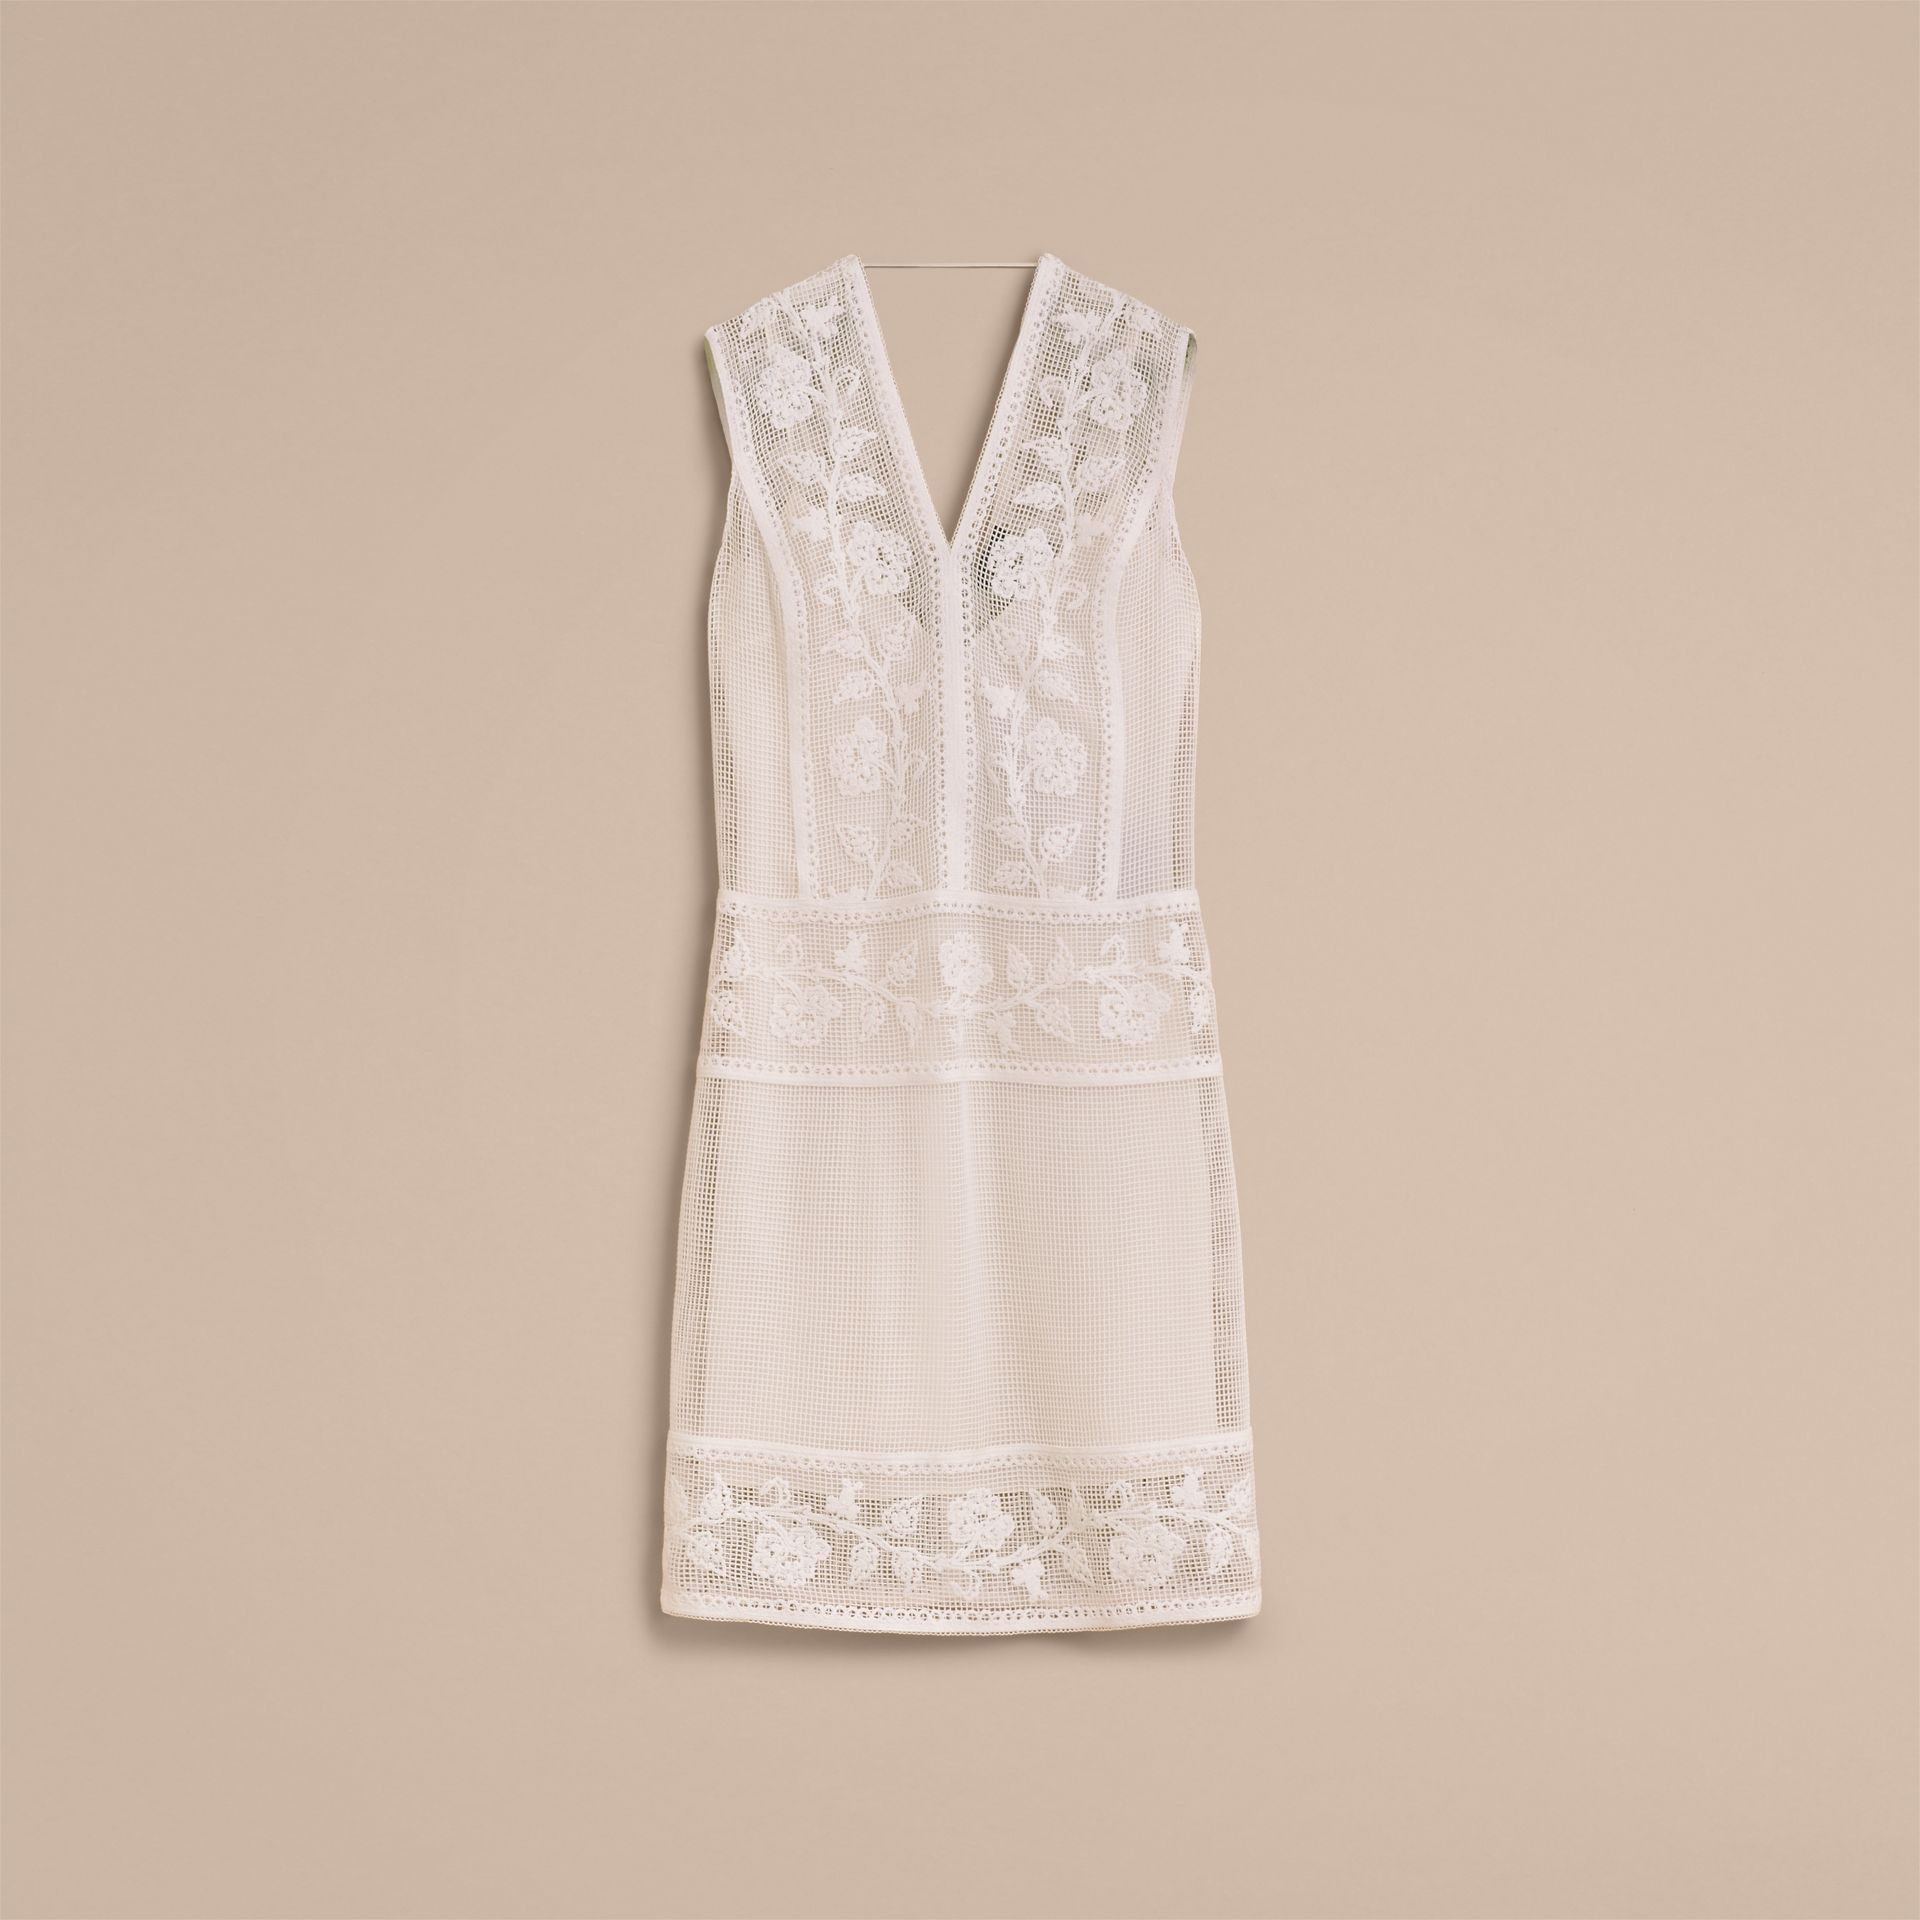 Net and Floral Macramé Lace Panel Dress - Women | Burberry Hong Kong - gallery image 4